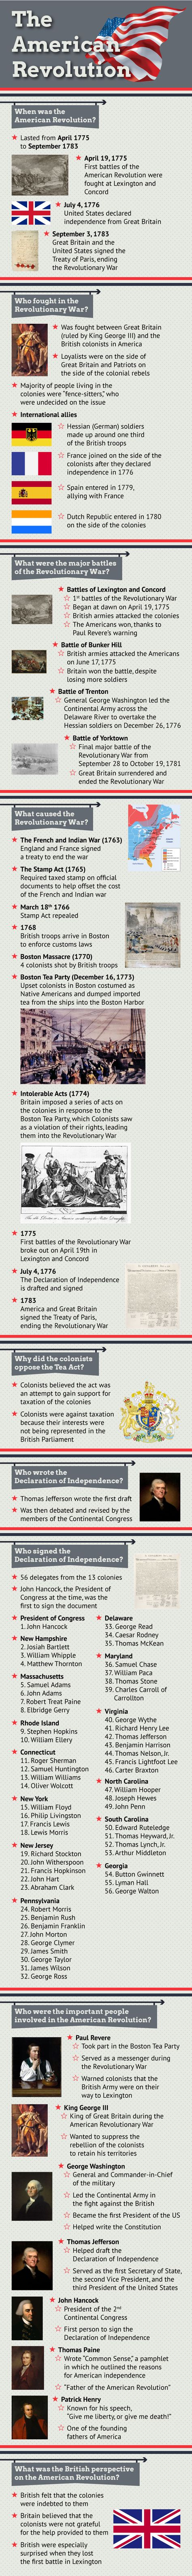 why did the american revolution start essay American revolution essay topics as students learn more about the build up to the american revolution, the war of independence, and its aftermath, it's important that students practice writing.